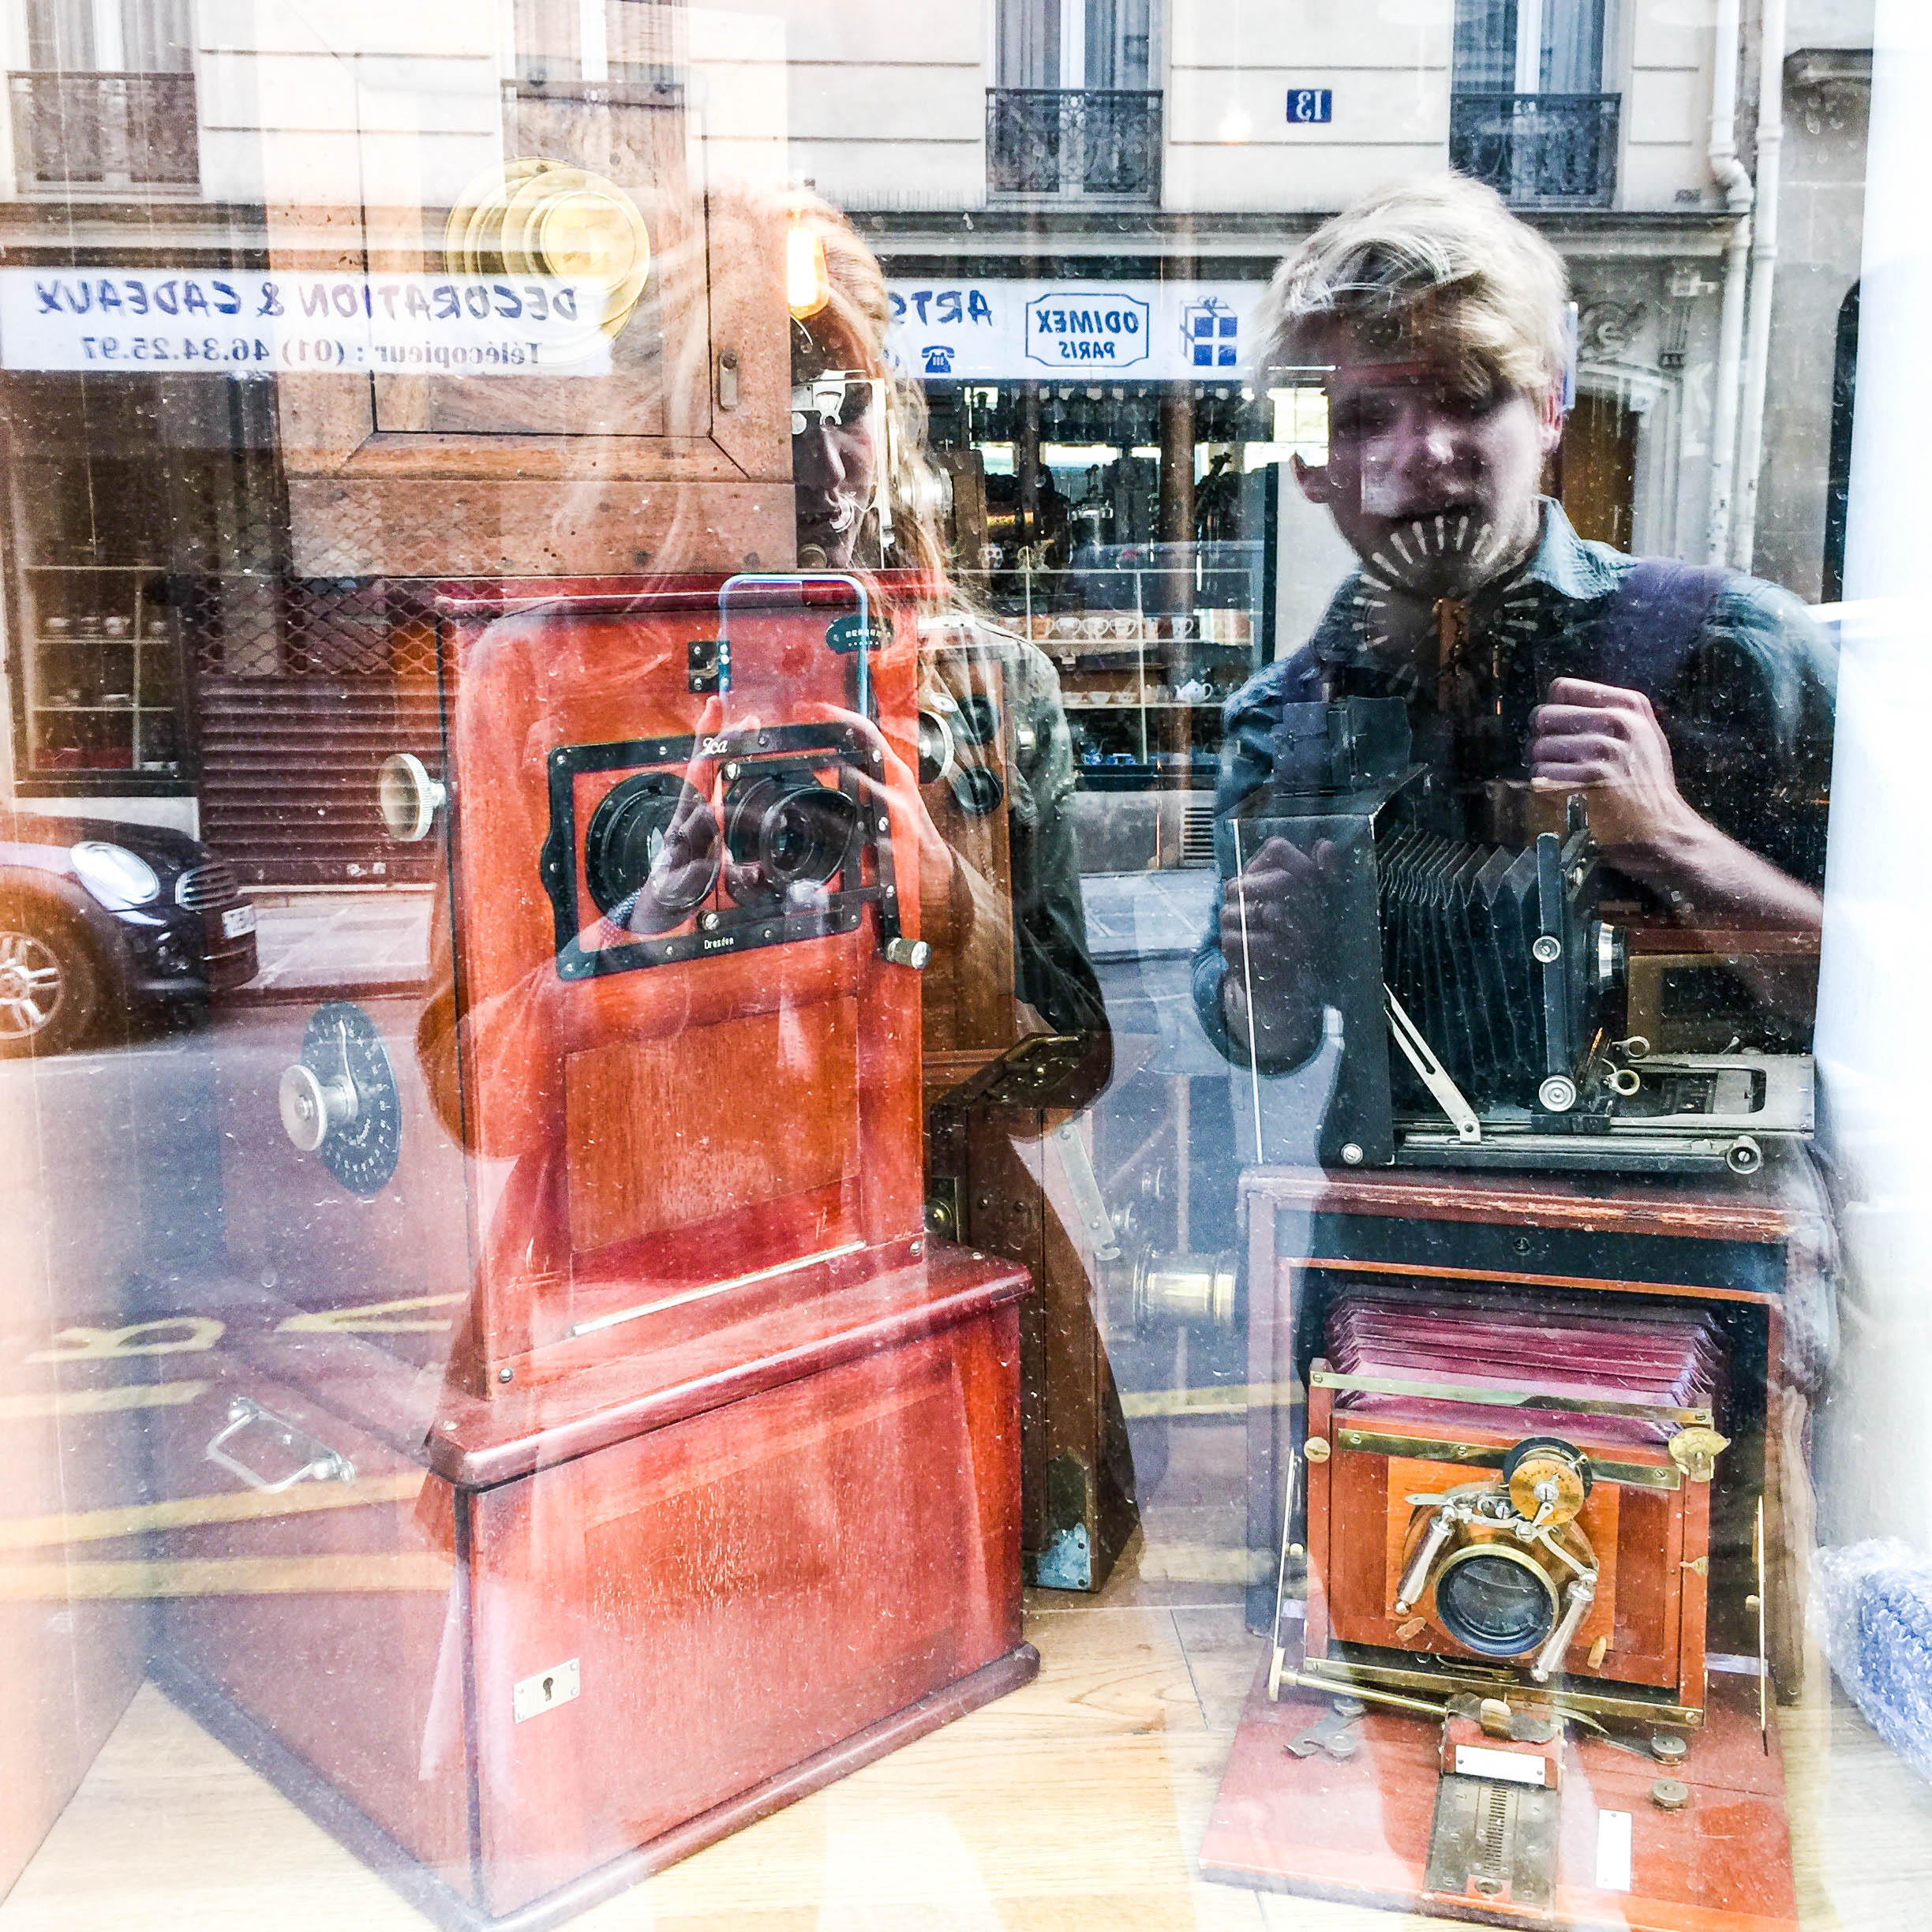 I love our reflections in this vintage camera shop window.